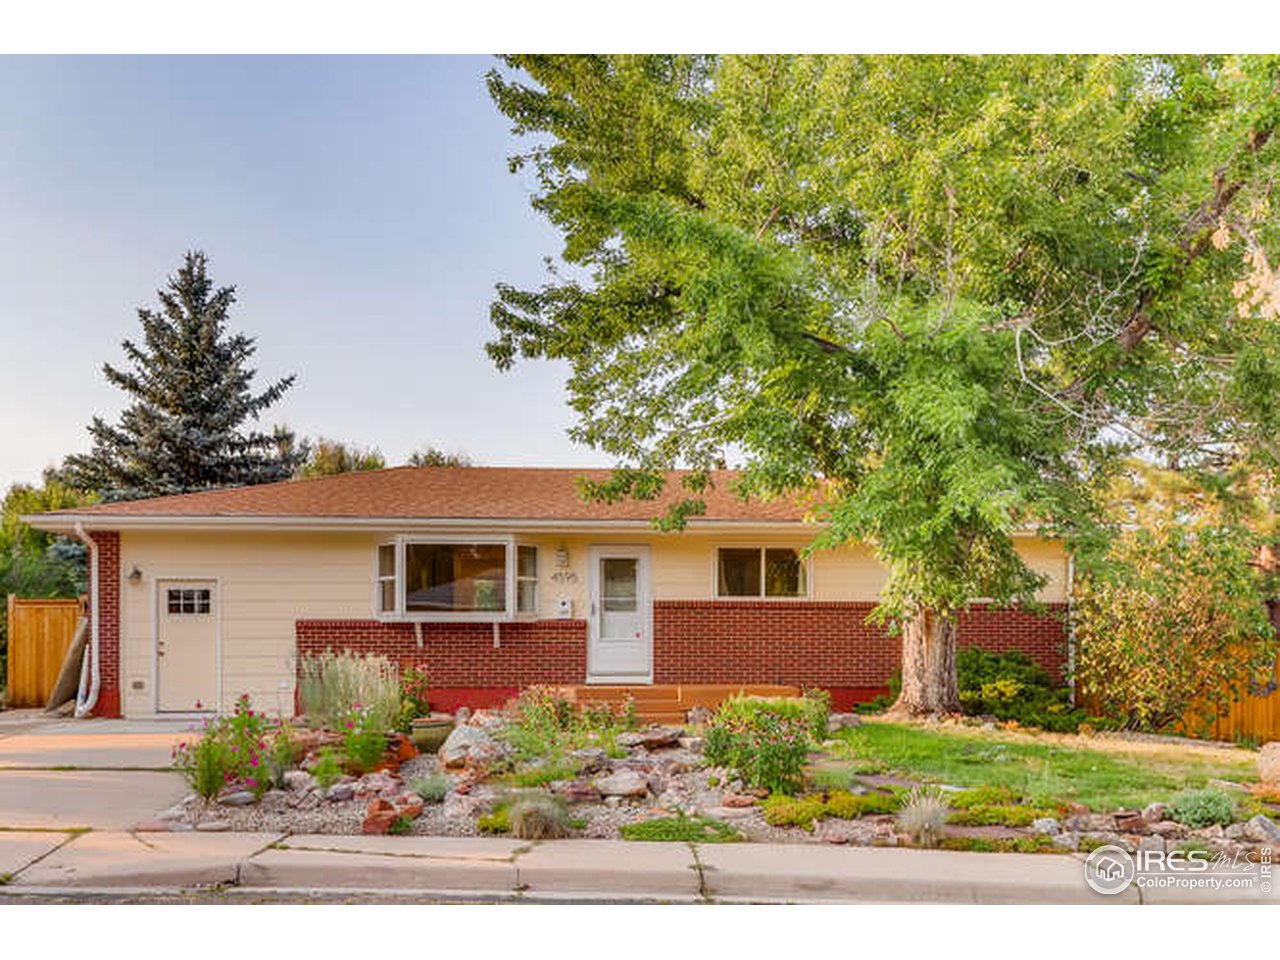 Home Sweet Home with Rental Potential!